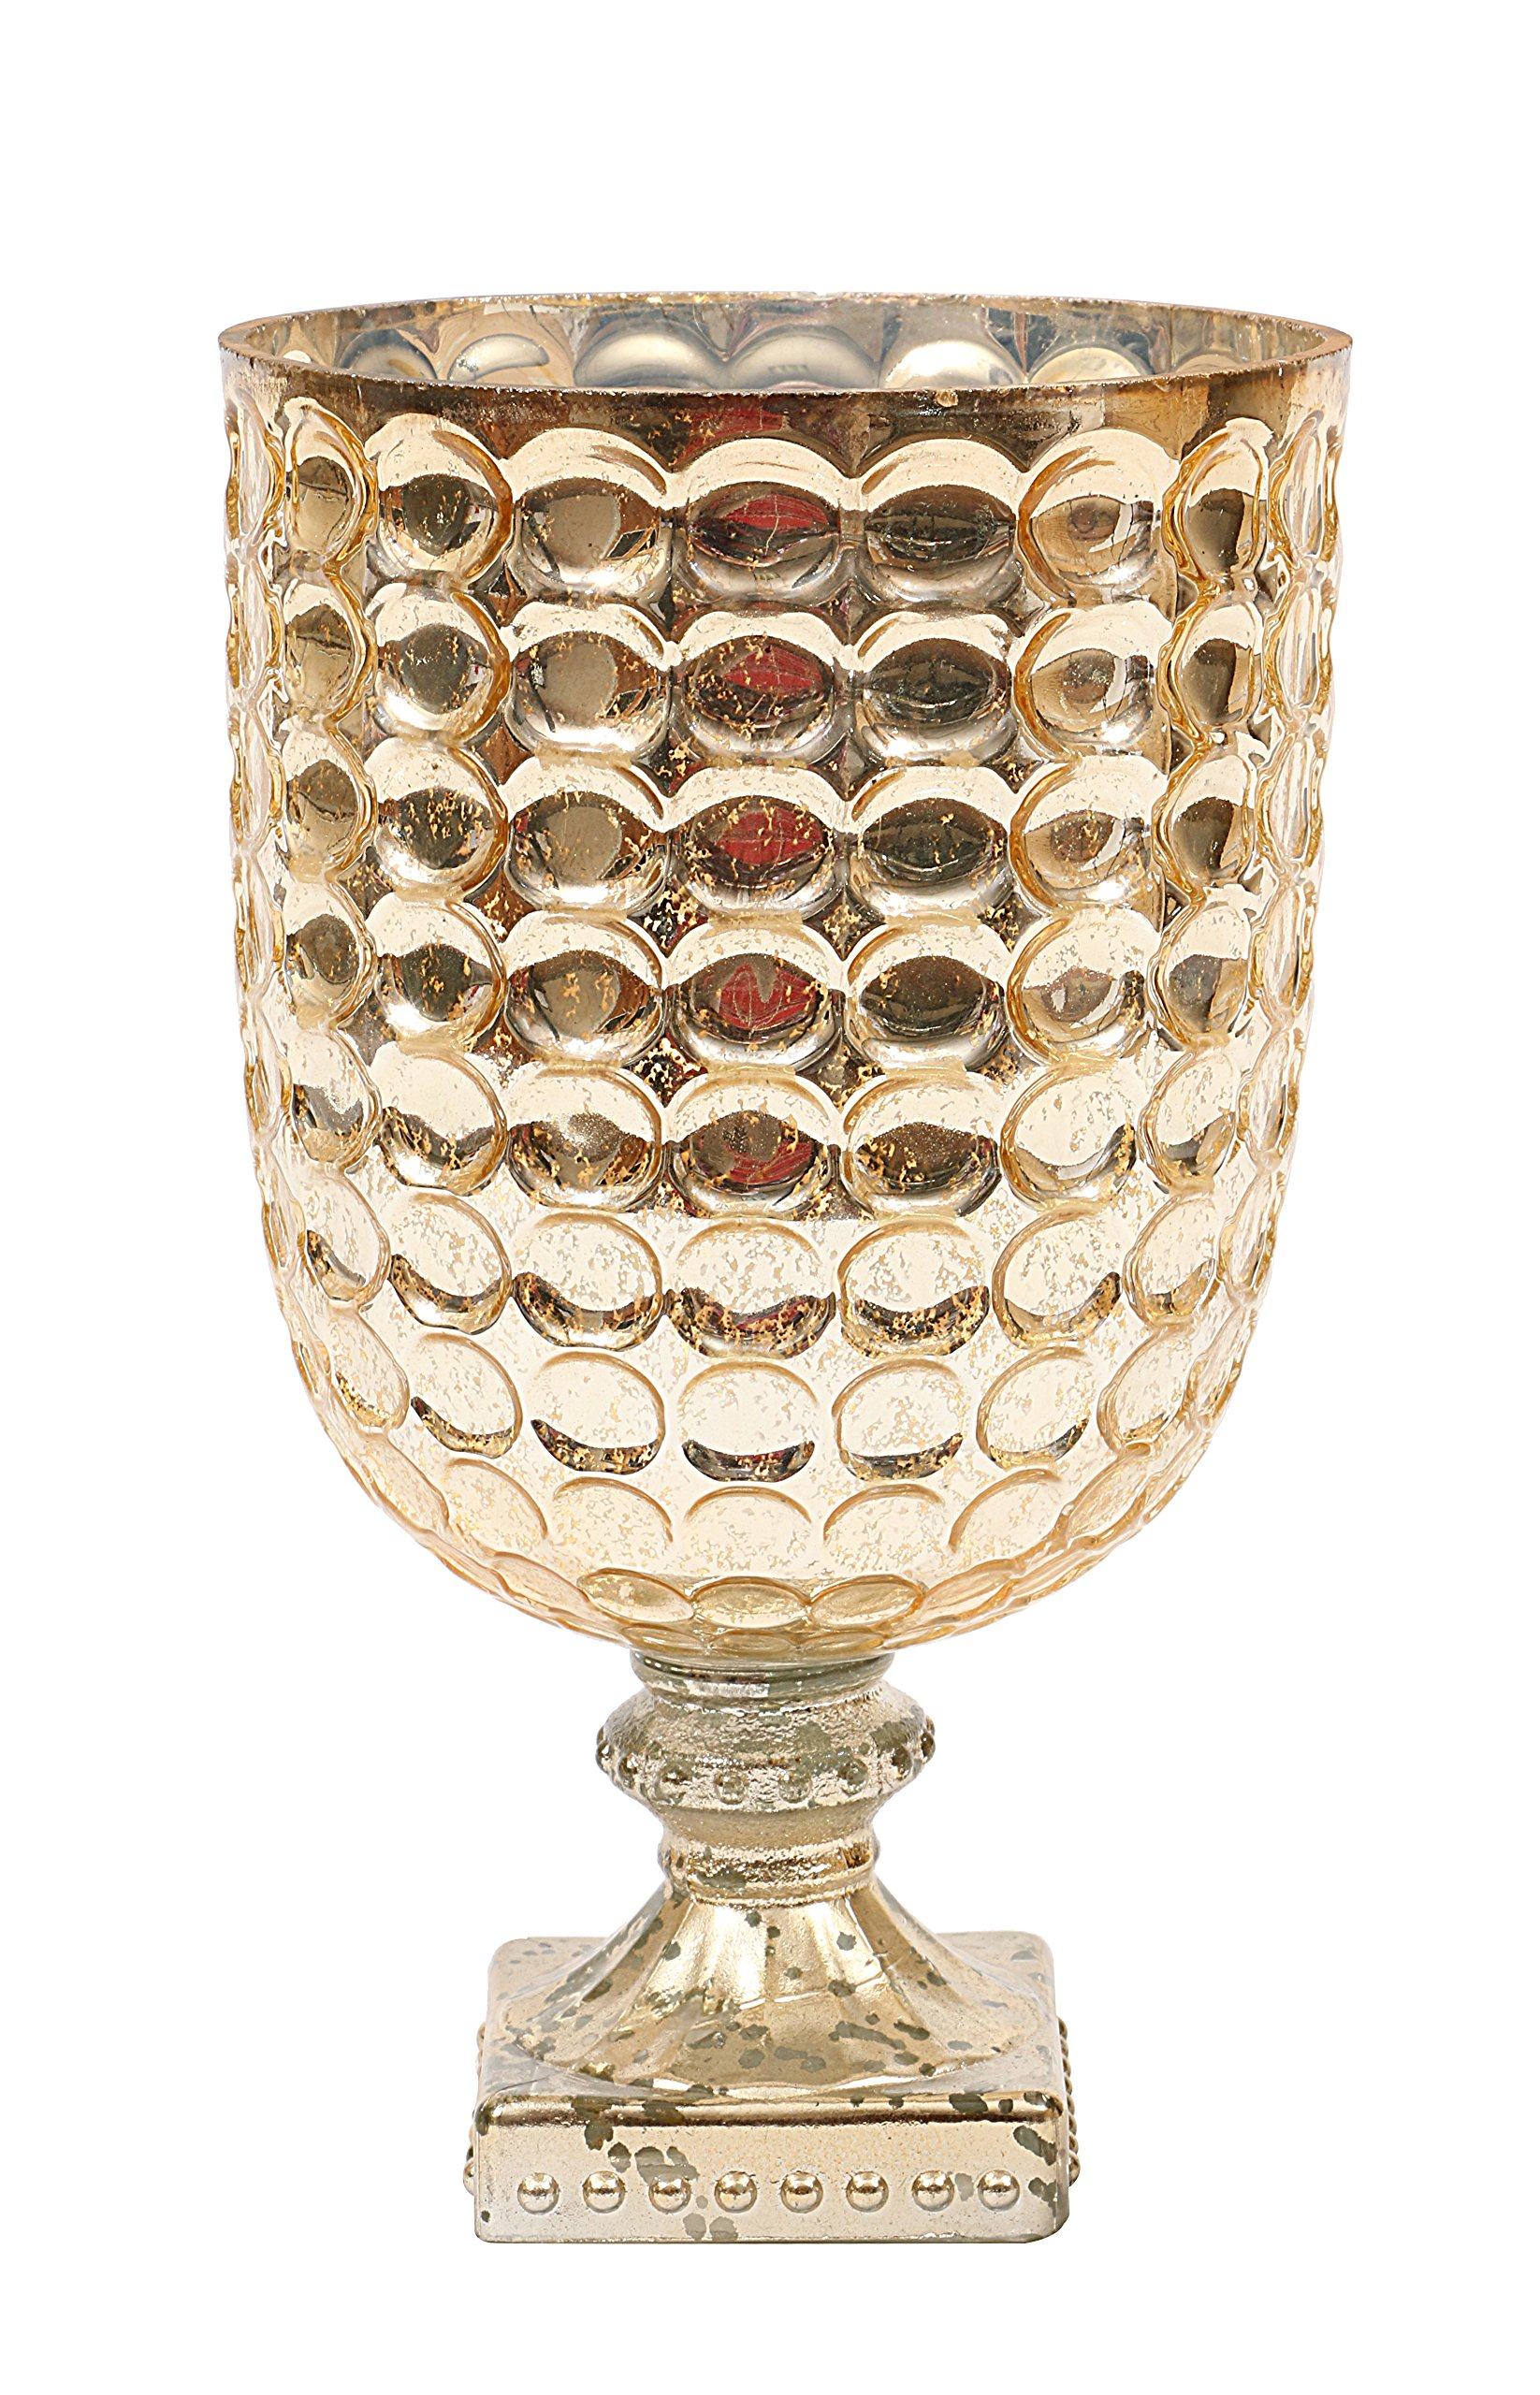 Creative Co-op XC6089 Footed Glass Candle Holder, 6 x 11, Gold